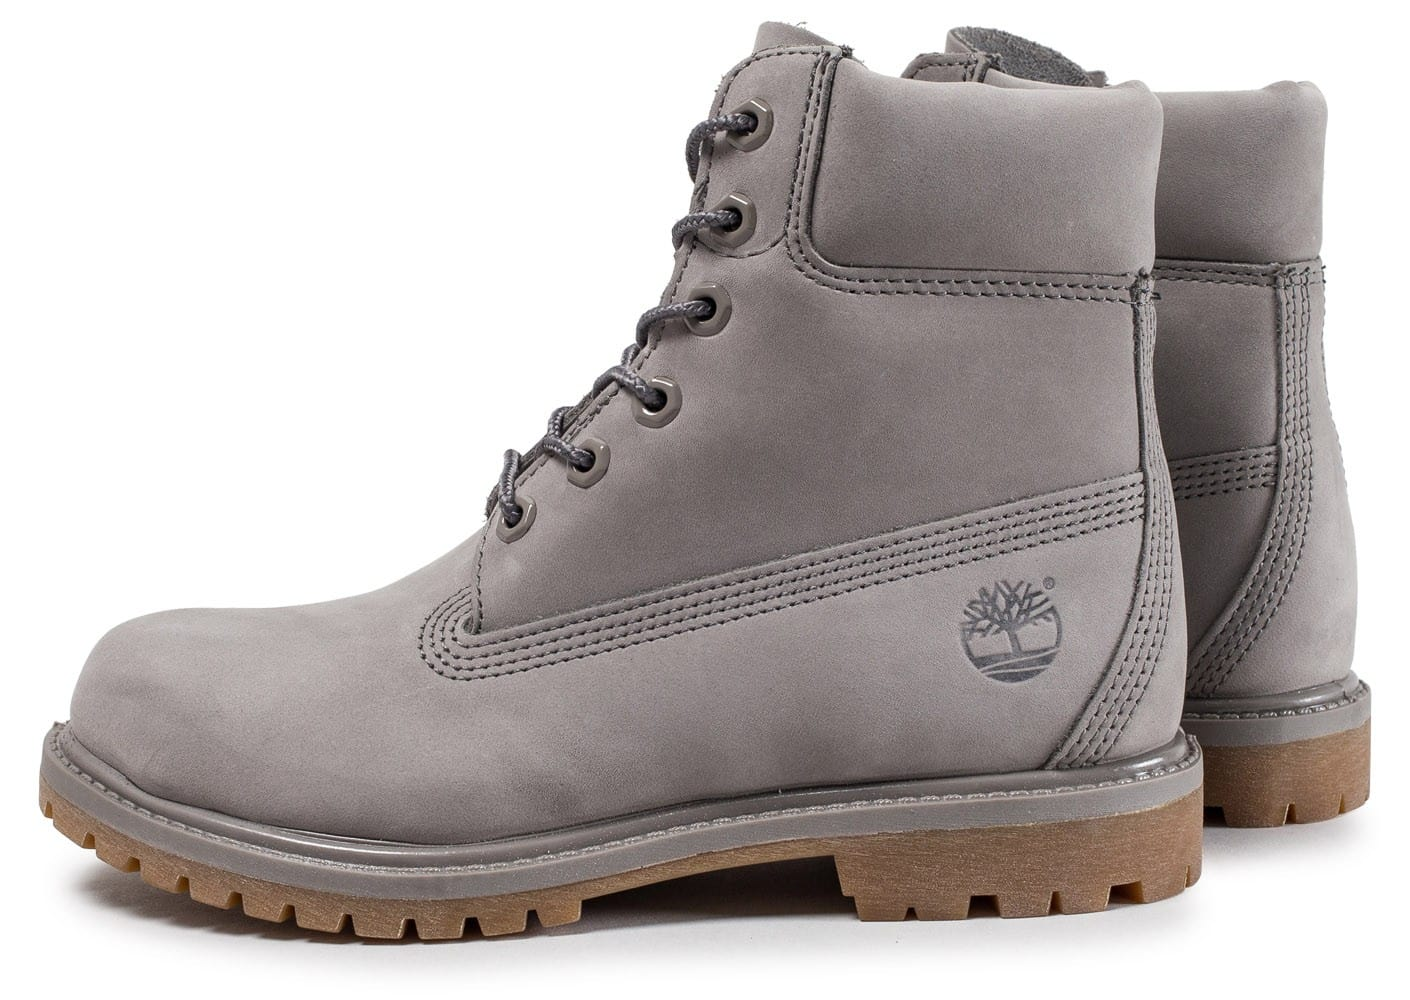 timberland femme grise et blanche